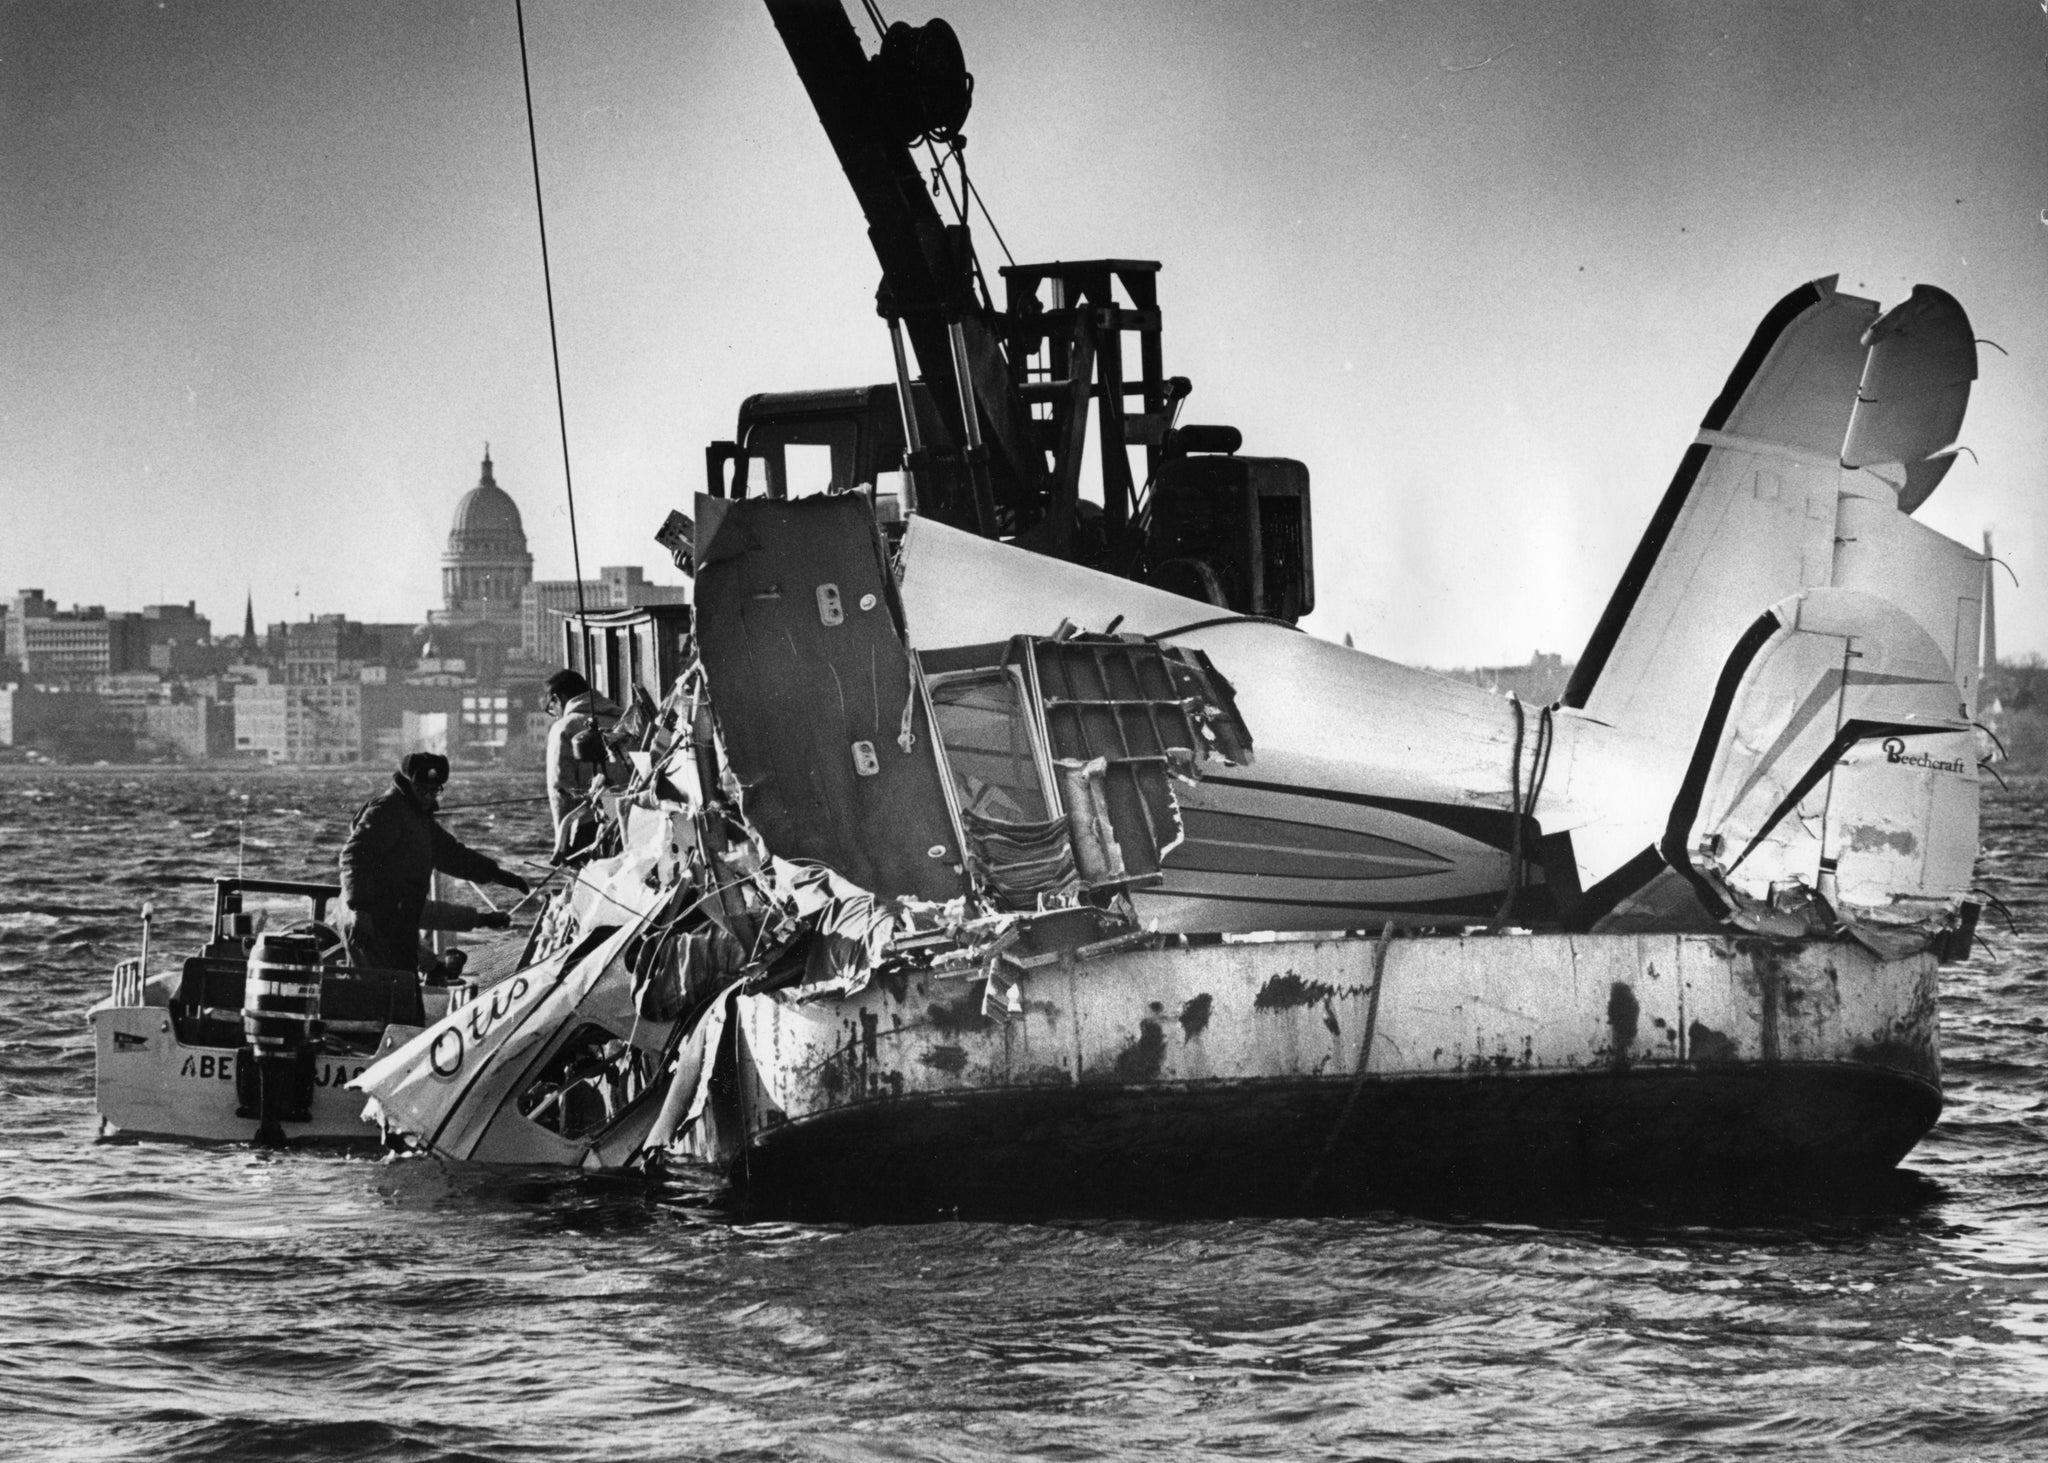 The wreckage of soul and R&B star Otis Redding's Beechcraft H18 aircraft being pulled out of Lake Monona in December 1967. The plane crashed in poor weather on December 10, killing Redding, fellow musicians Matthew Kelly, Jimmy King, Phalon Jones, Ronnie Caldwell, Carl Cunningham, and pilot Richard Fraser. -- Wisconsin State Journal